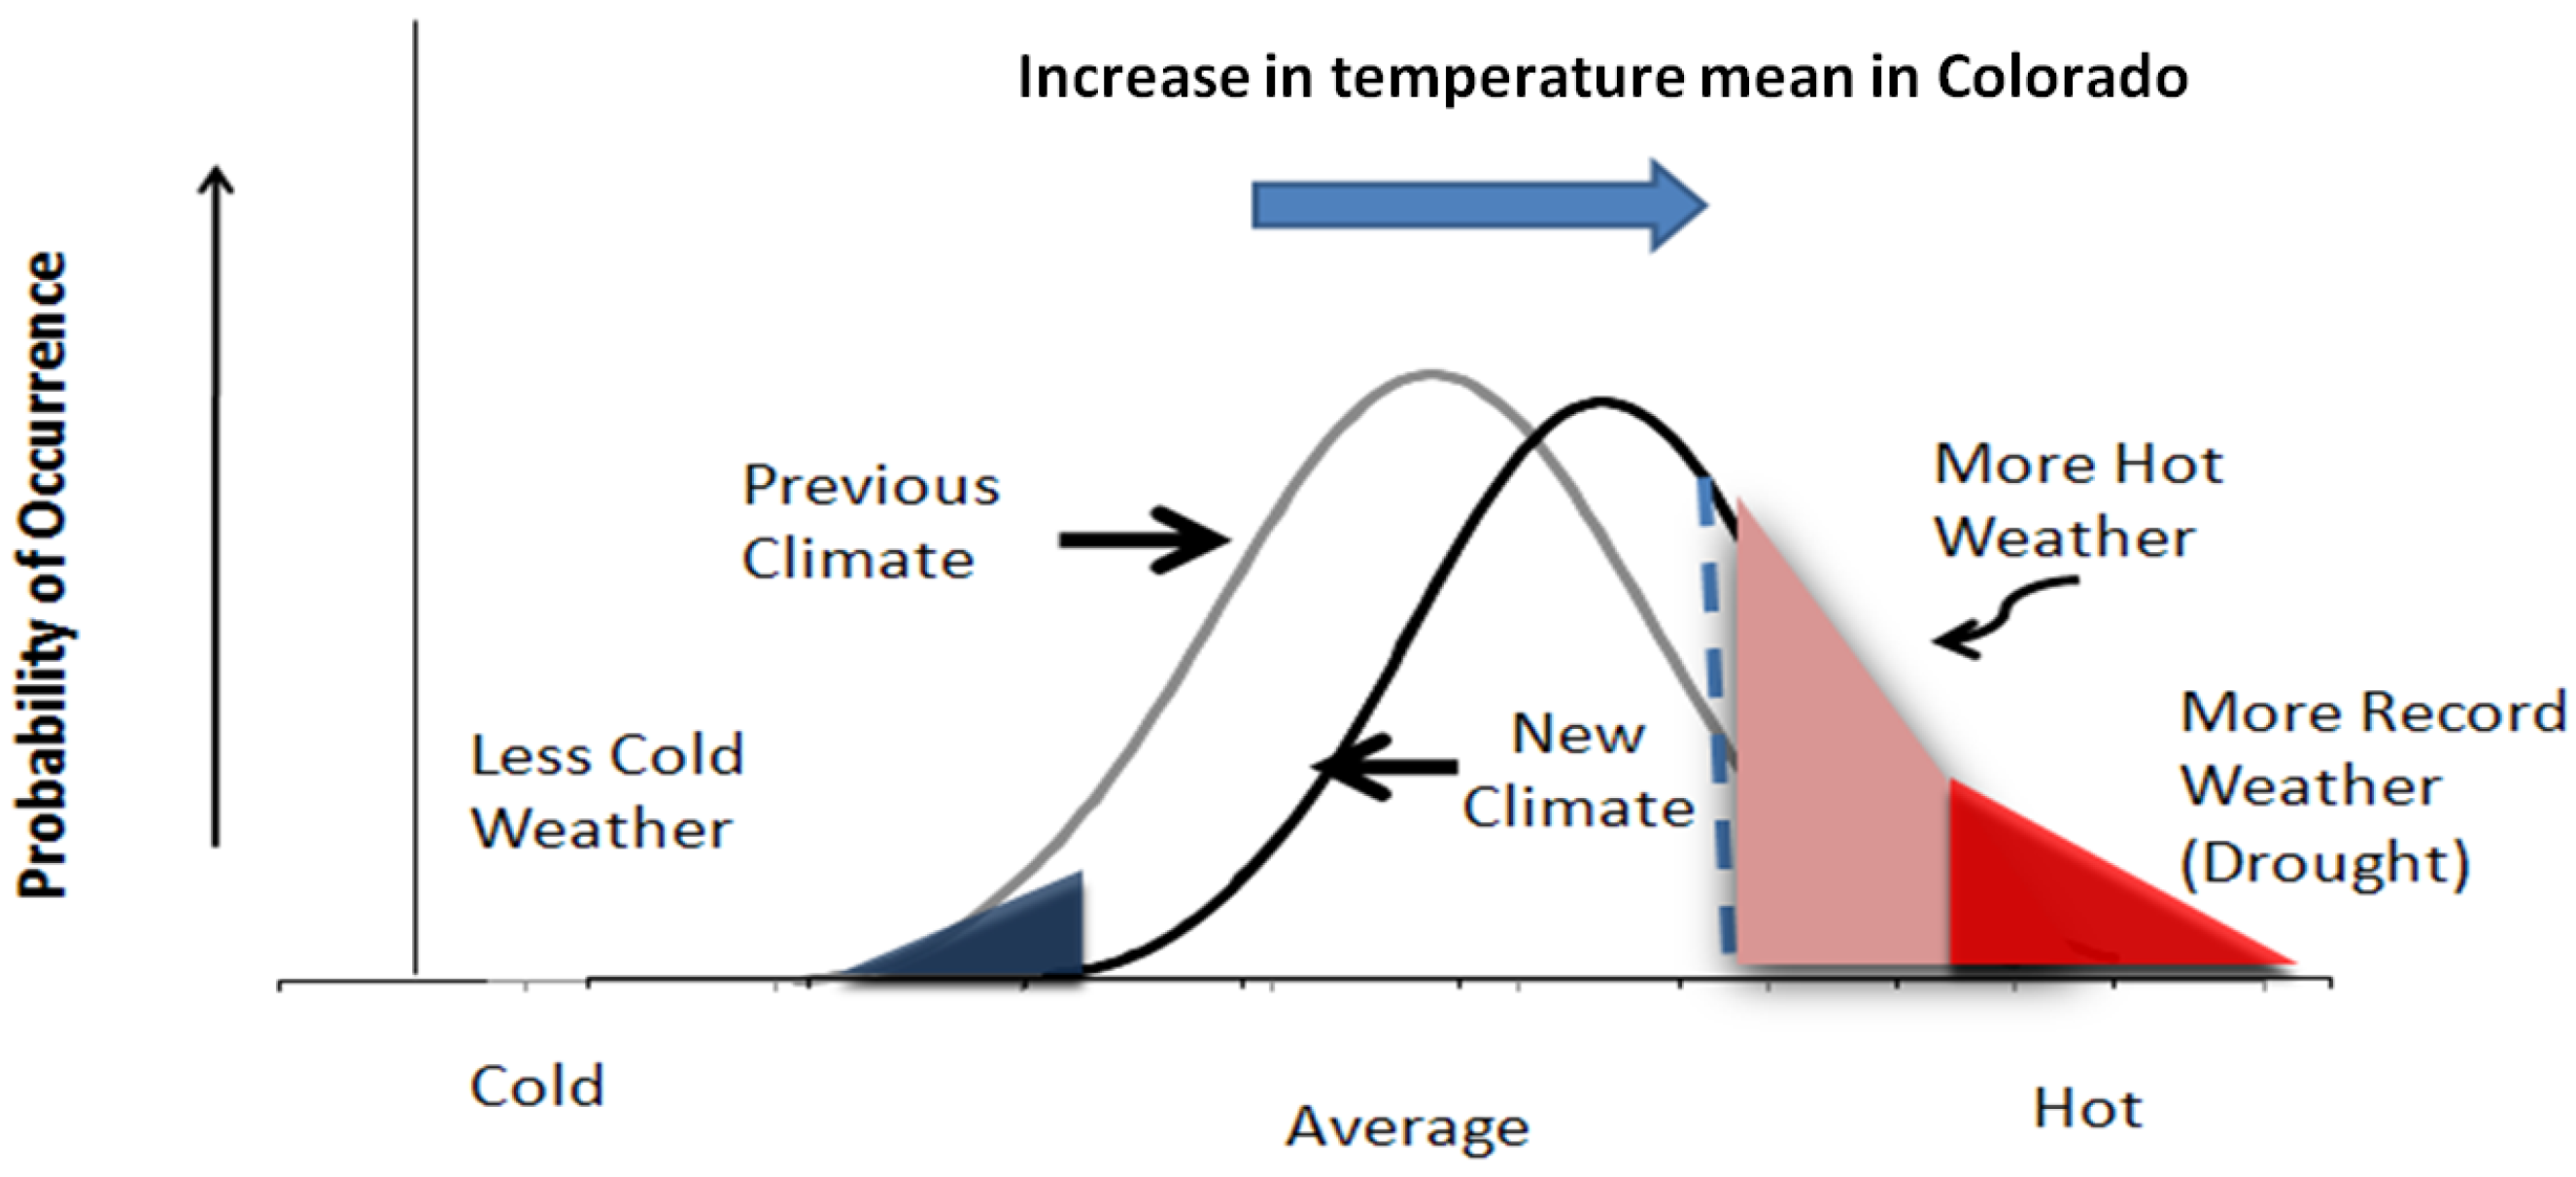 Assessing impacts of climate change: An editorial essay